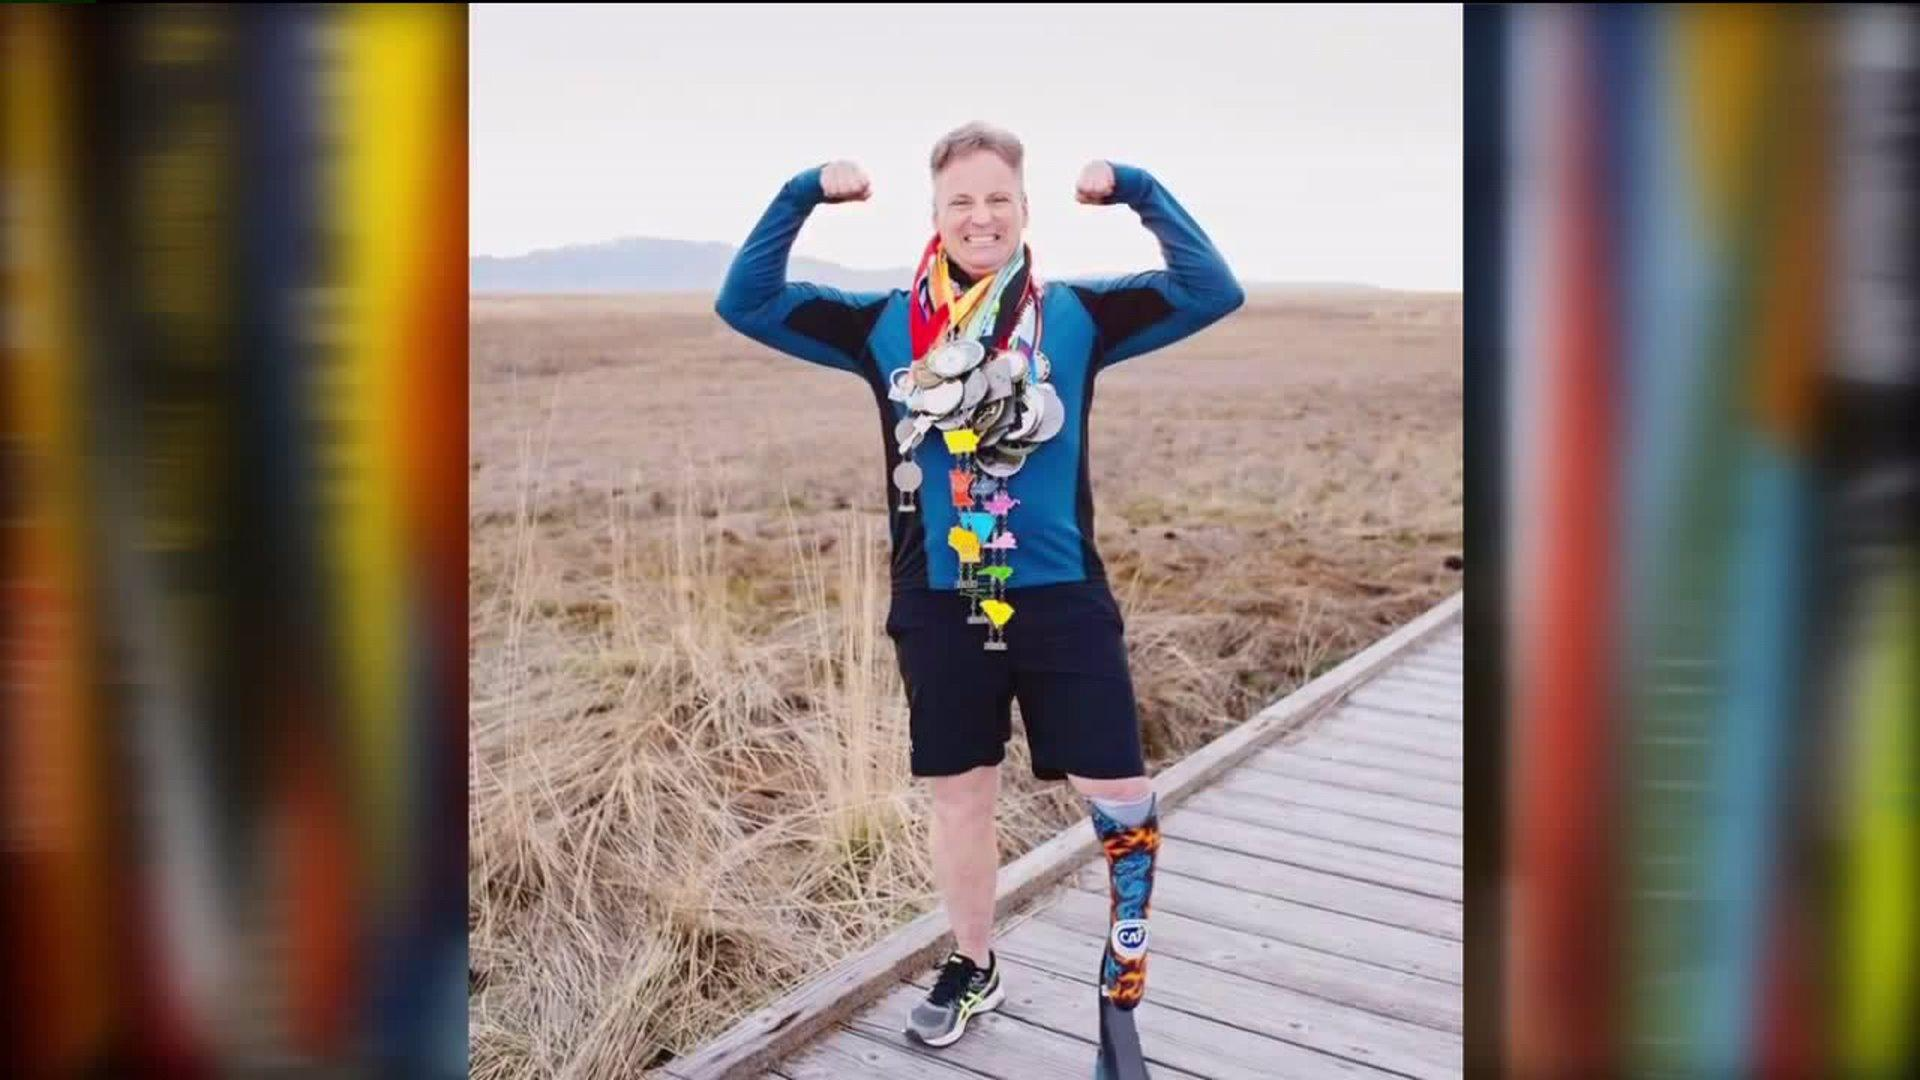 Man with Prosthetic Leg Completes a Marathon in All 50 States